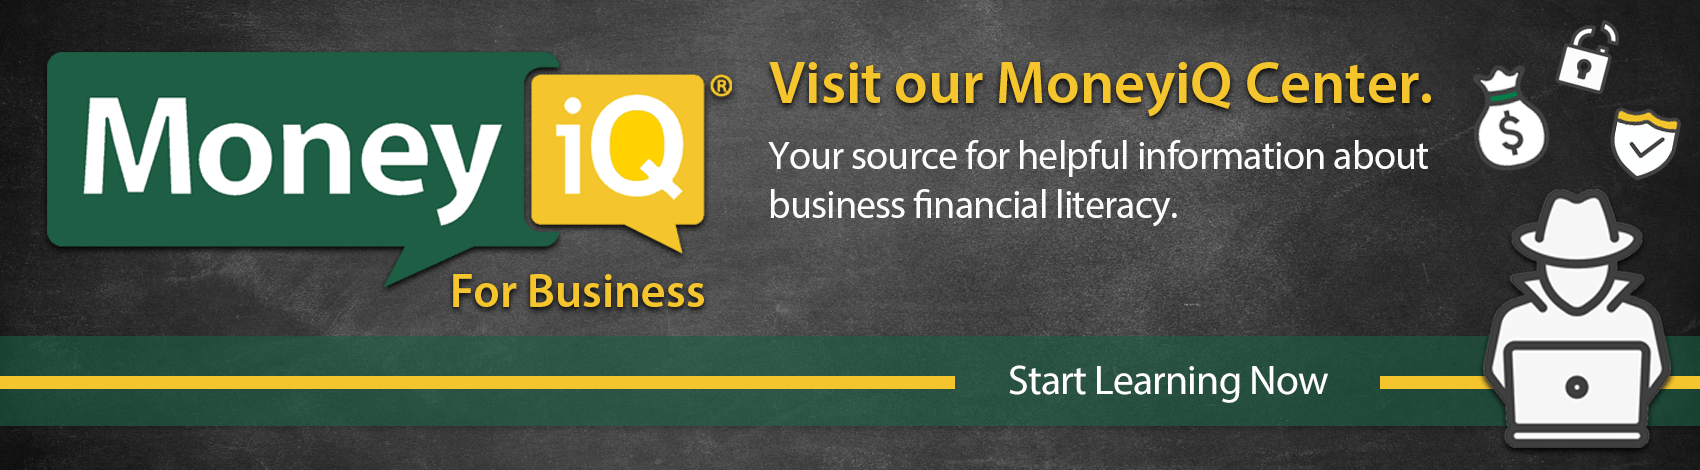 Visit Our MoneyiQ Center For Business